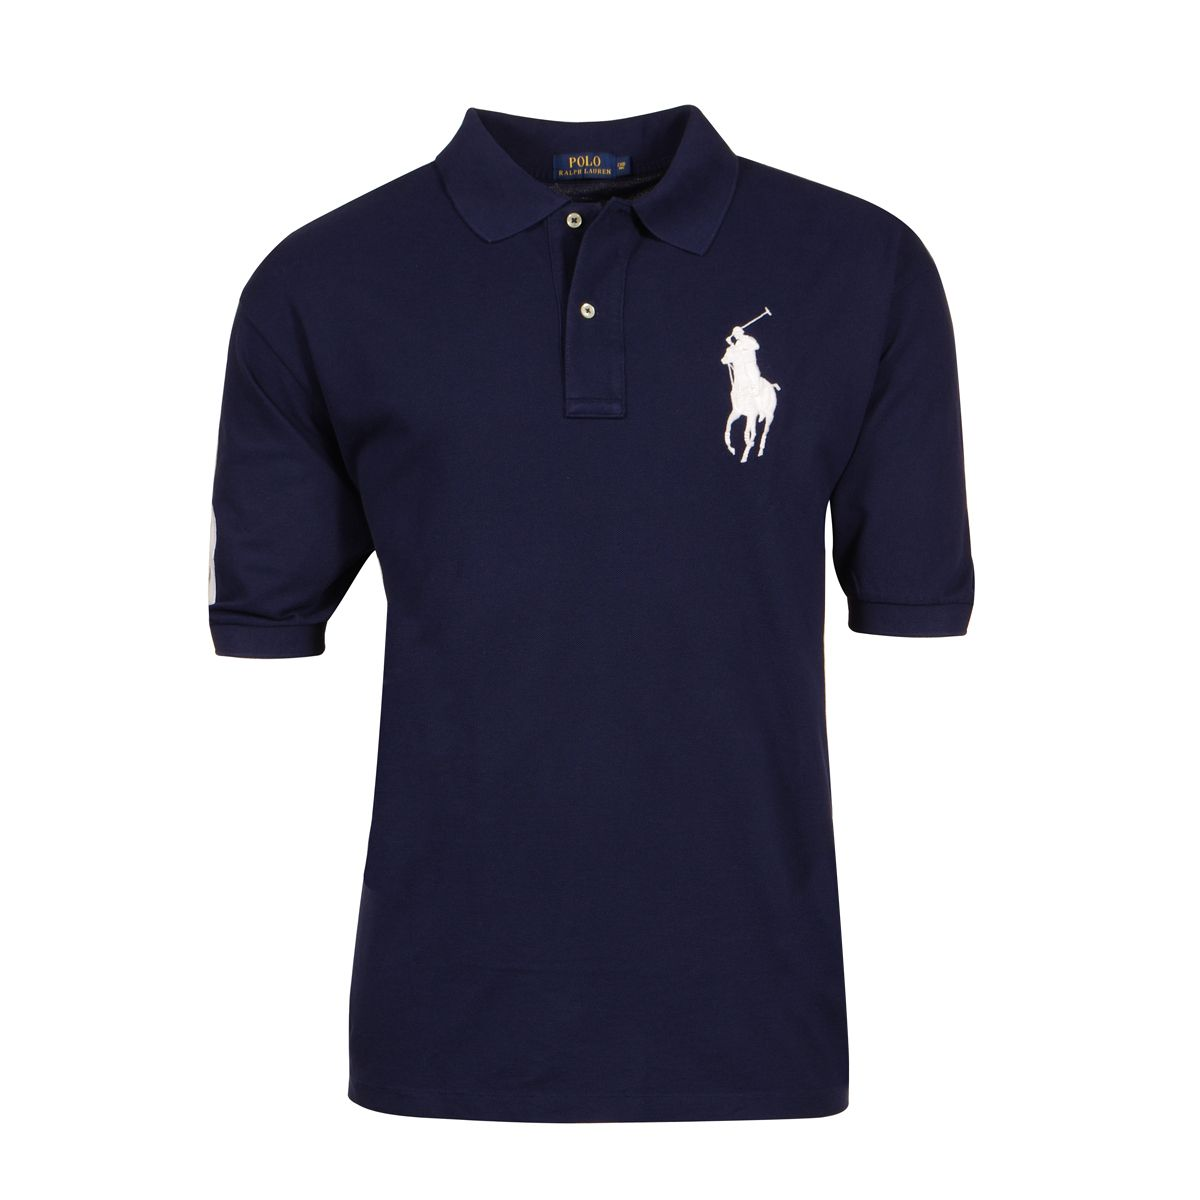 Polo bleu grande taille du 2xl au 6xl size factory for 6xl ralph lauren polo shirts